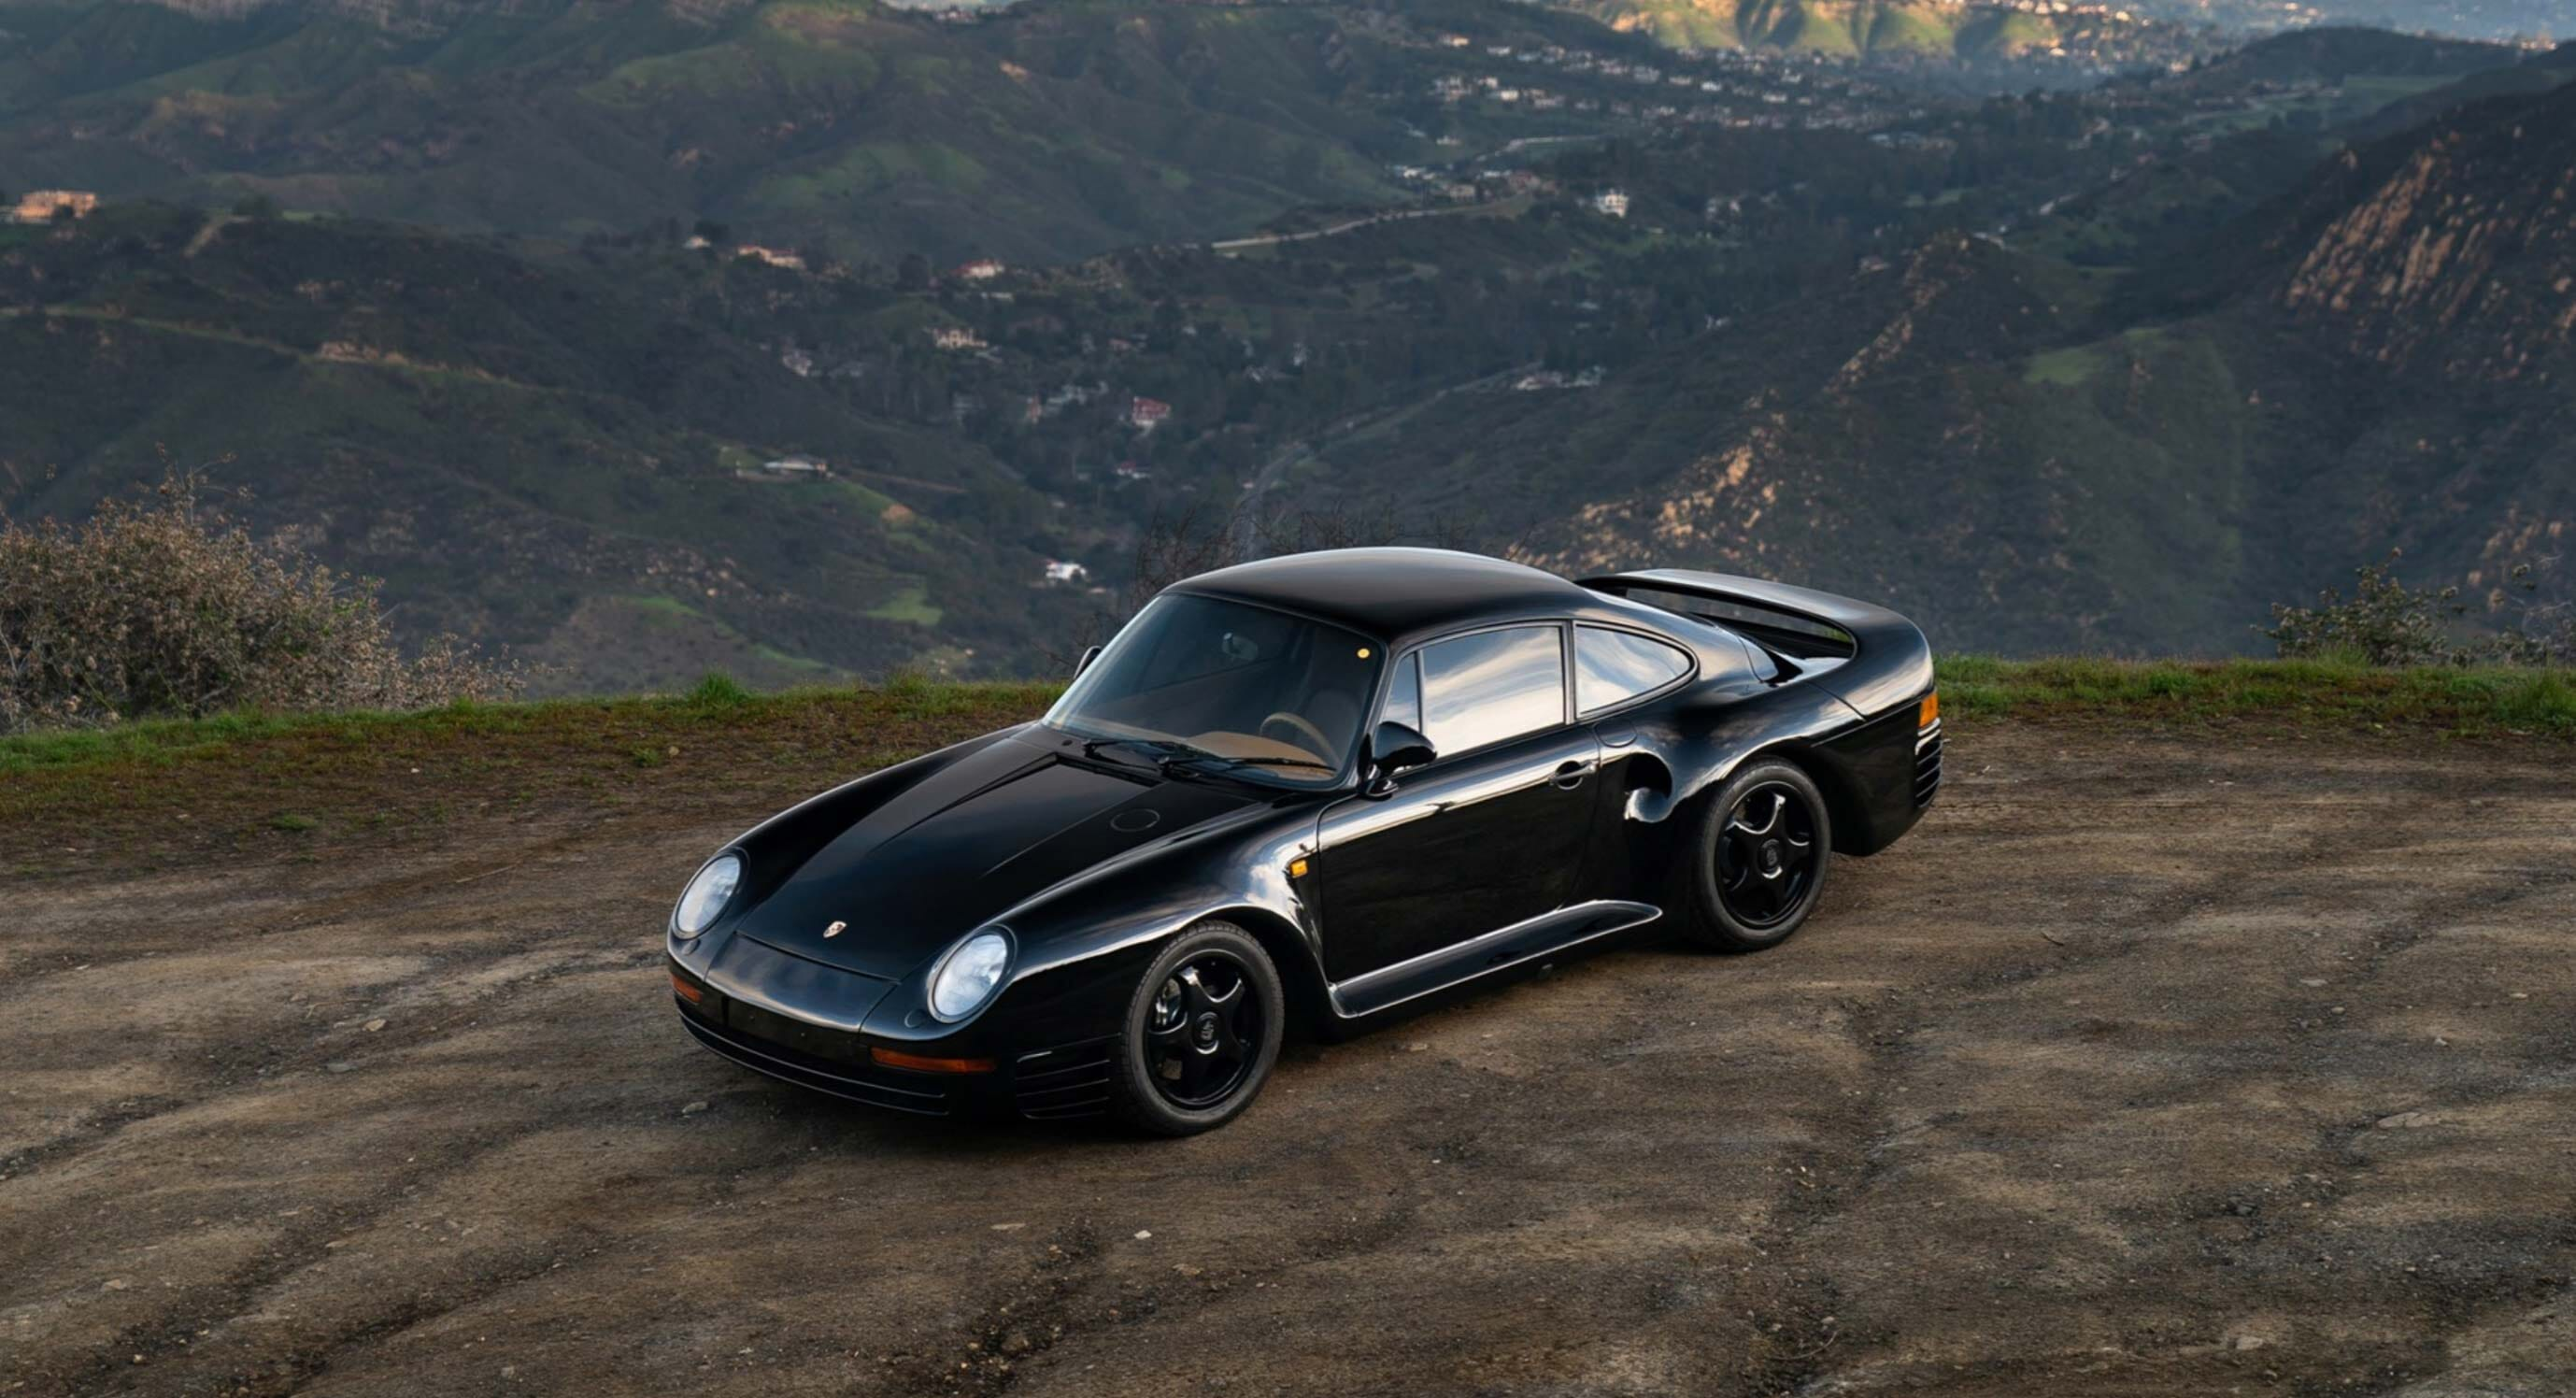 Is This Porsche 959 Komfort The Ultimate Enthusiast Car?